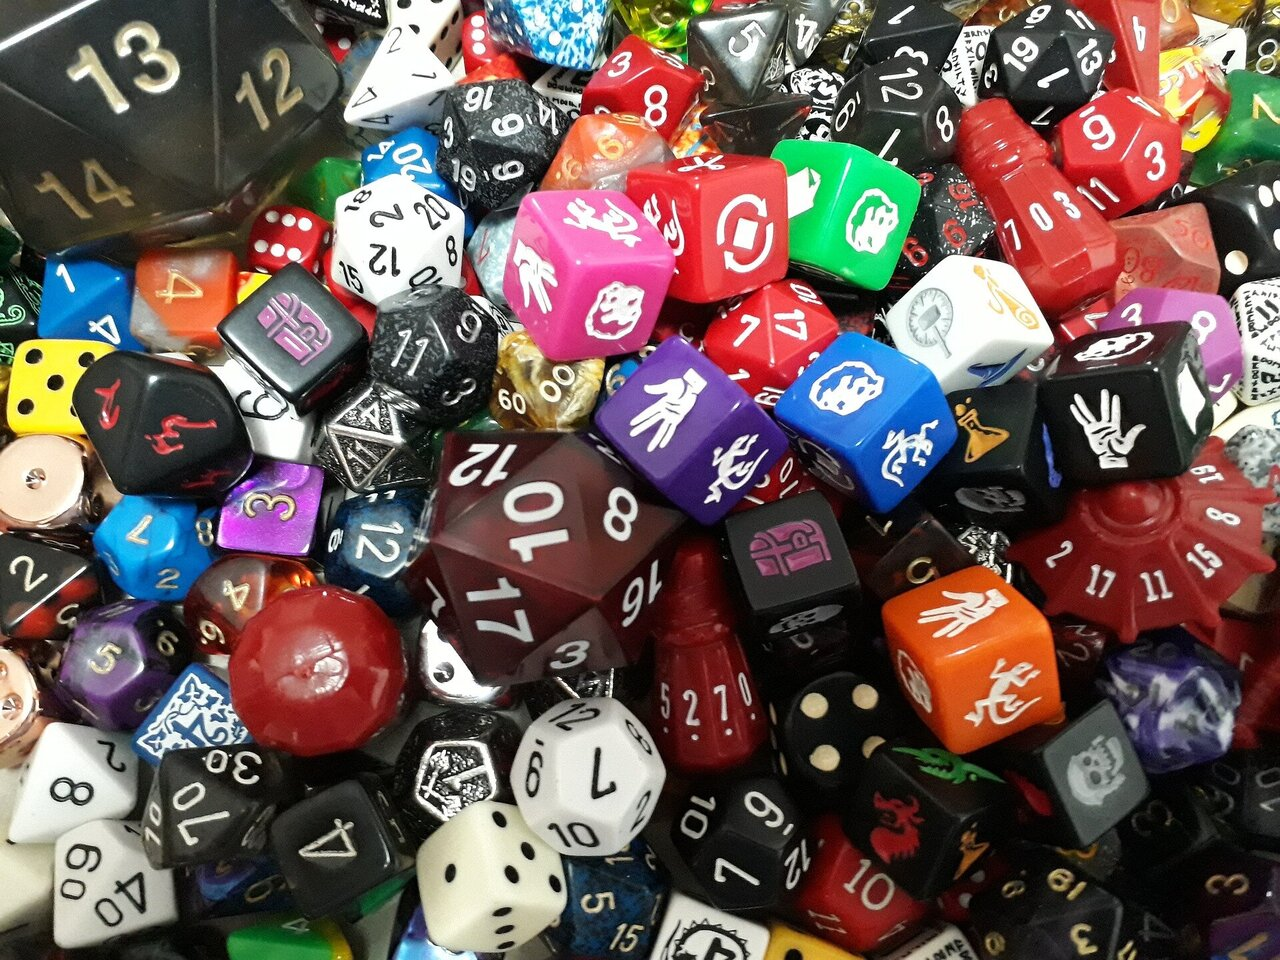 Dungeons Dragons May Help At Risk Kids Level Up Social Skills Say Researchers